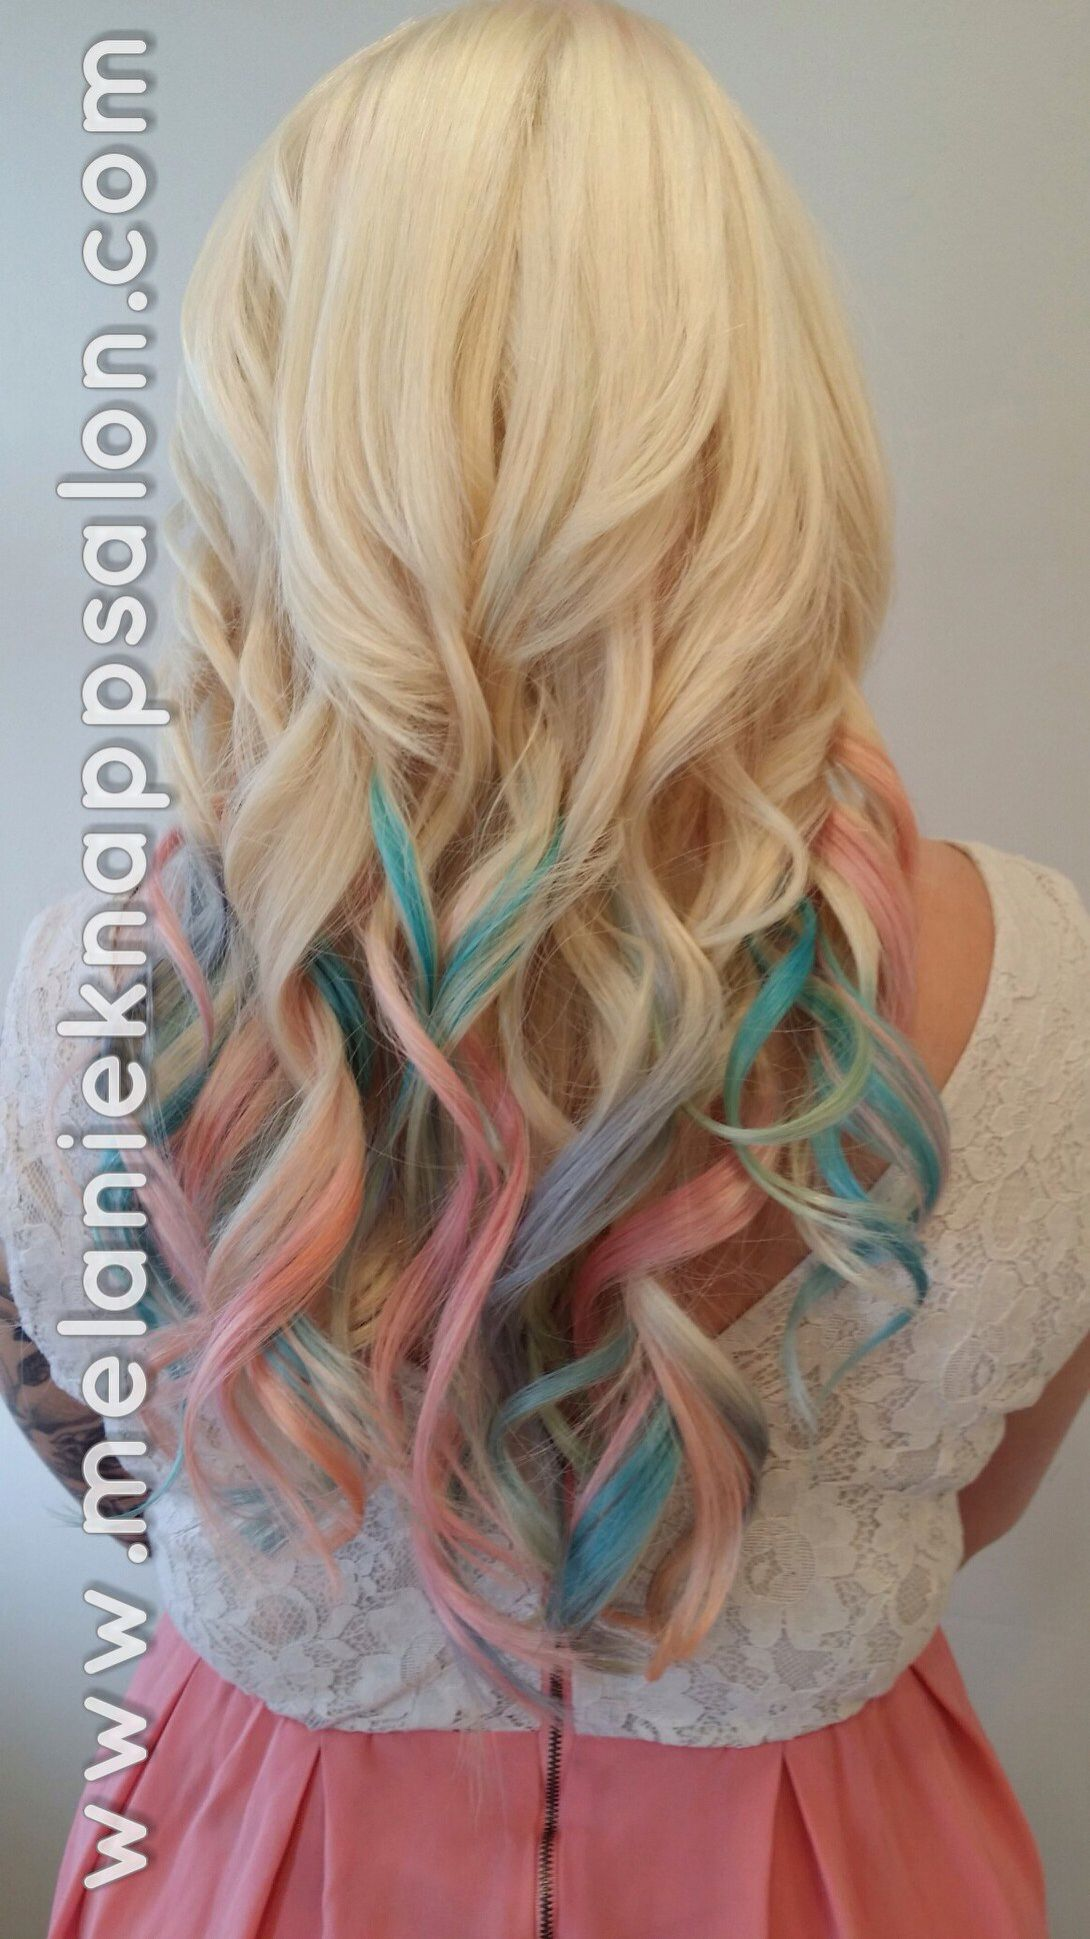 Pastel Ombre Hair With Babe Tape In Extensions To Take From Sho